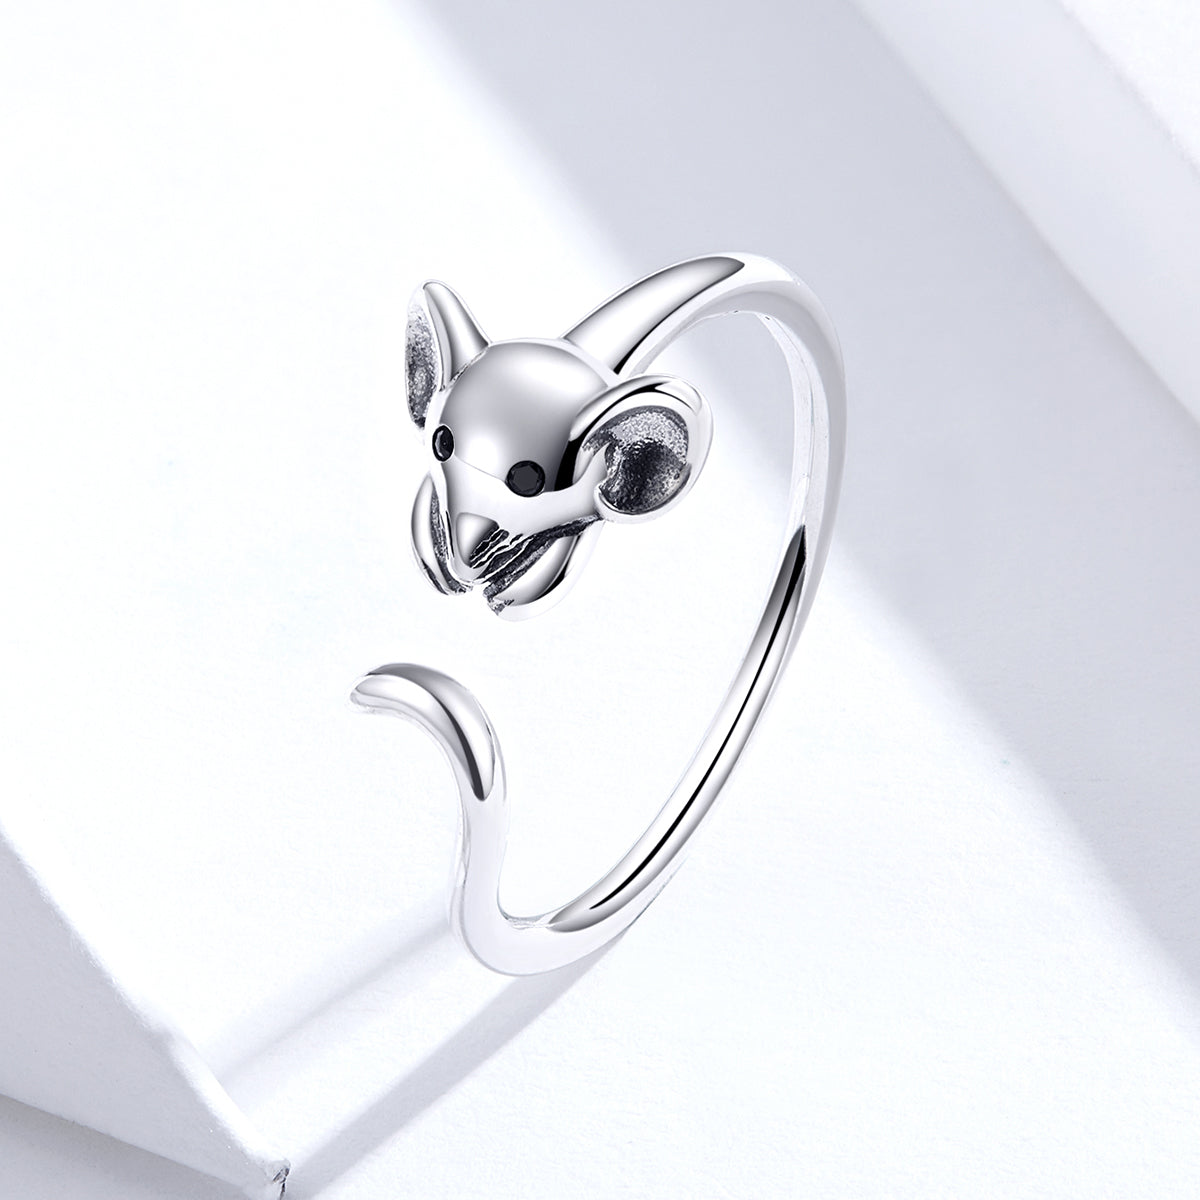 S925 sterling silver oxidized ring cute mouse ring